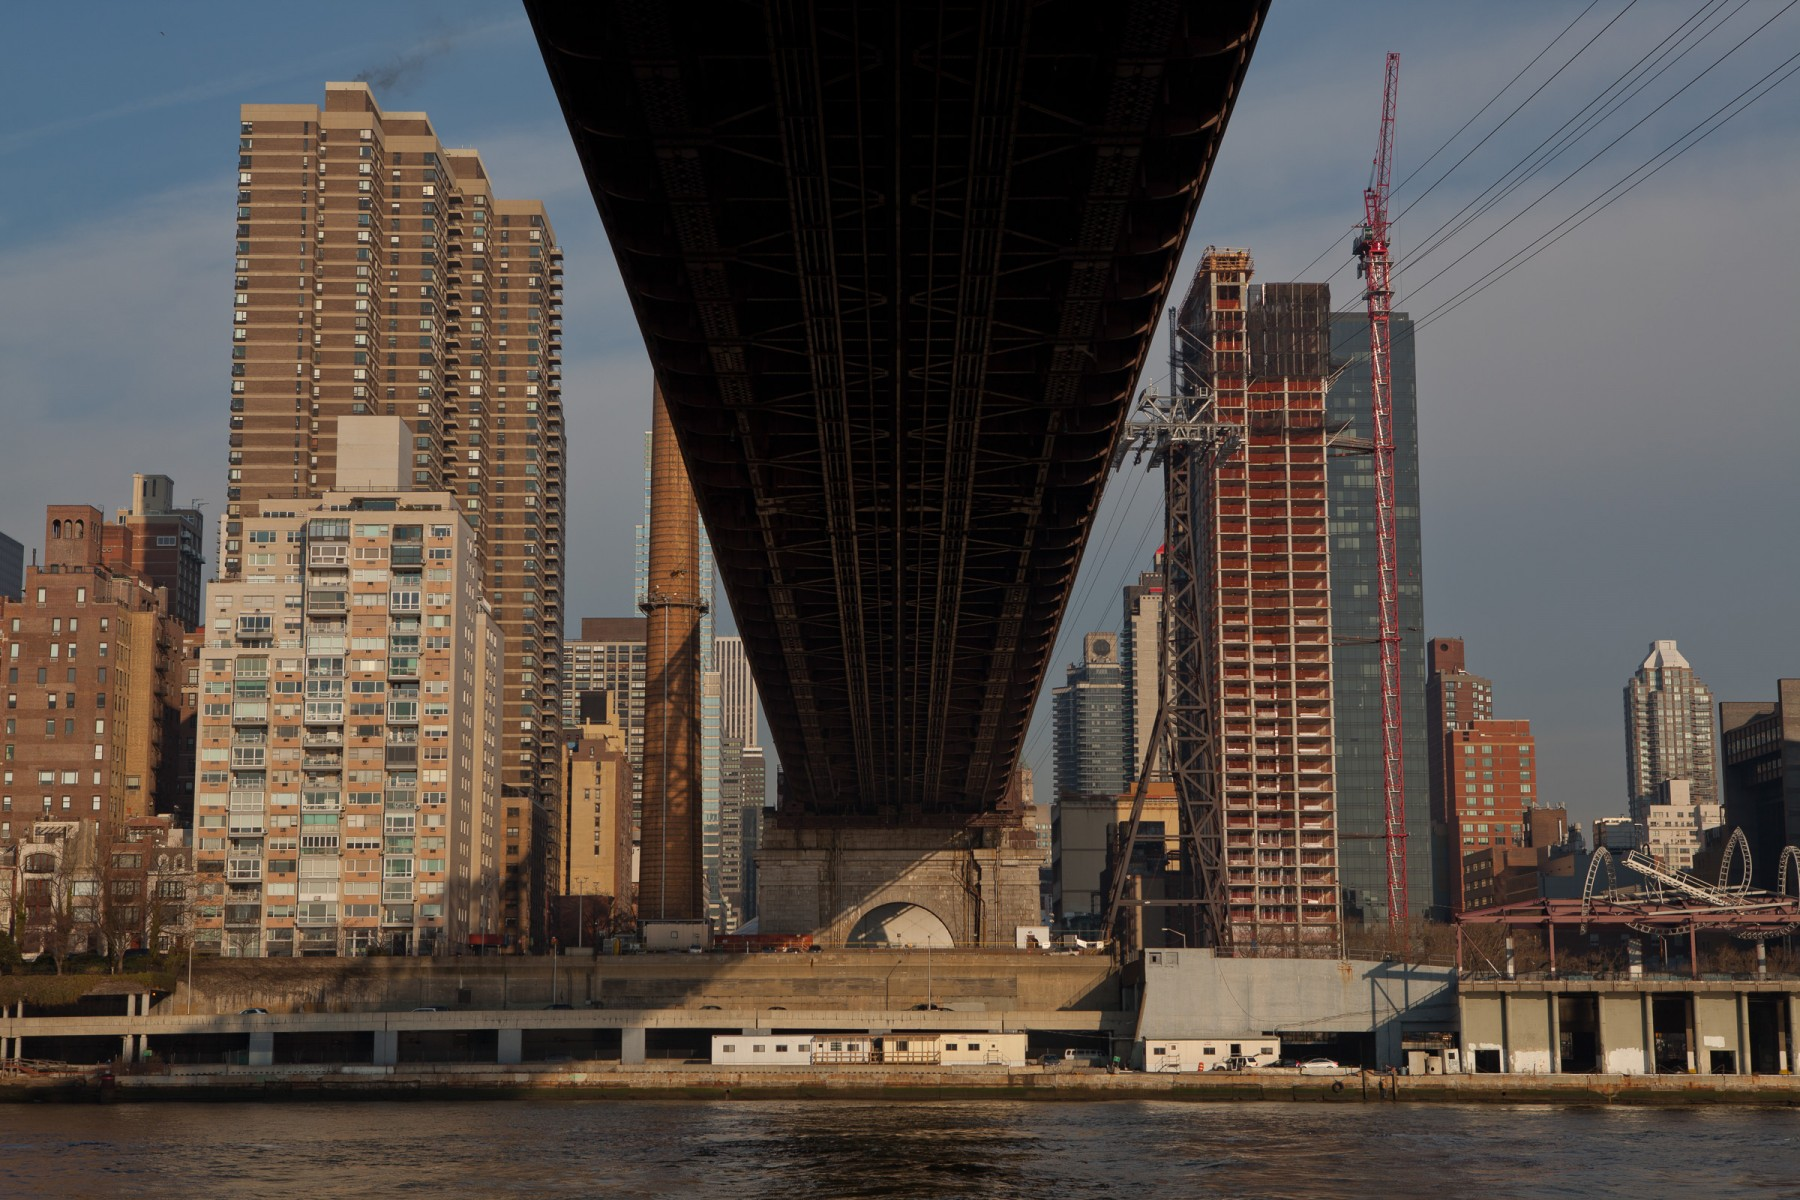 View across the East river from underneath the western span of the Queensboro Bridge.